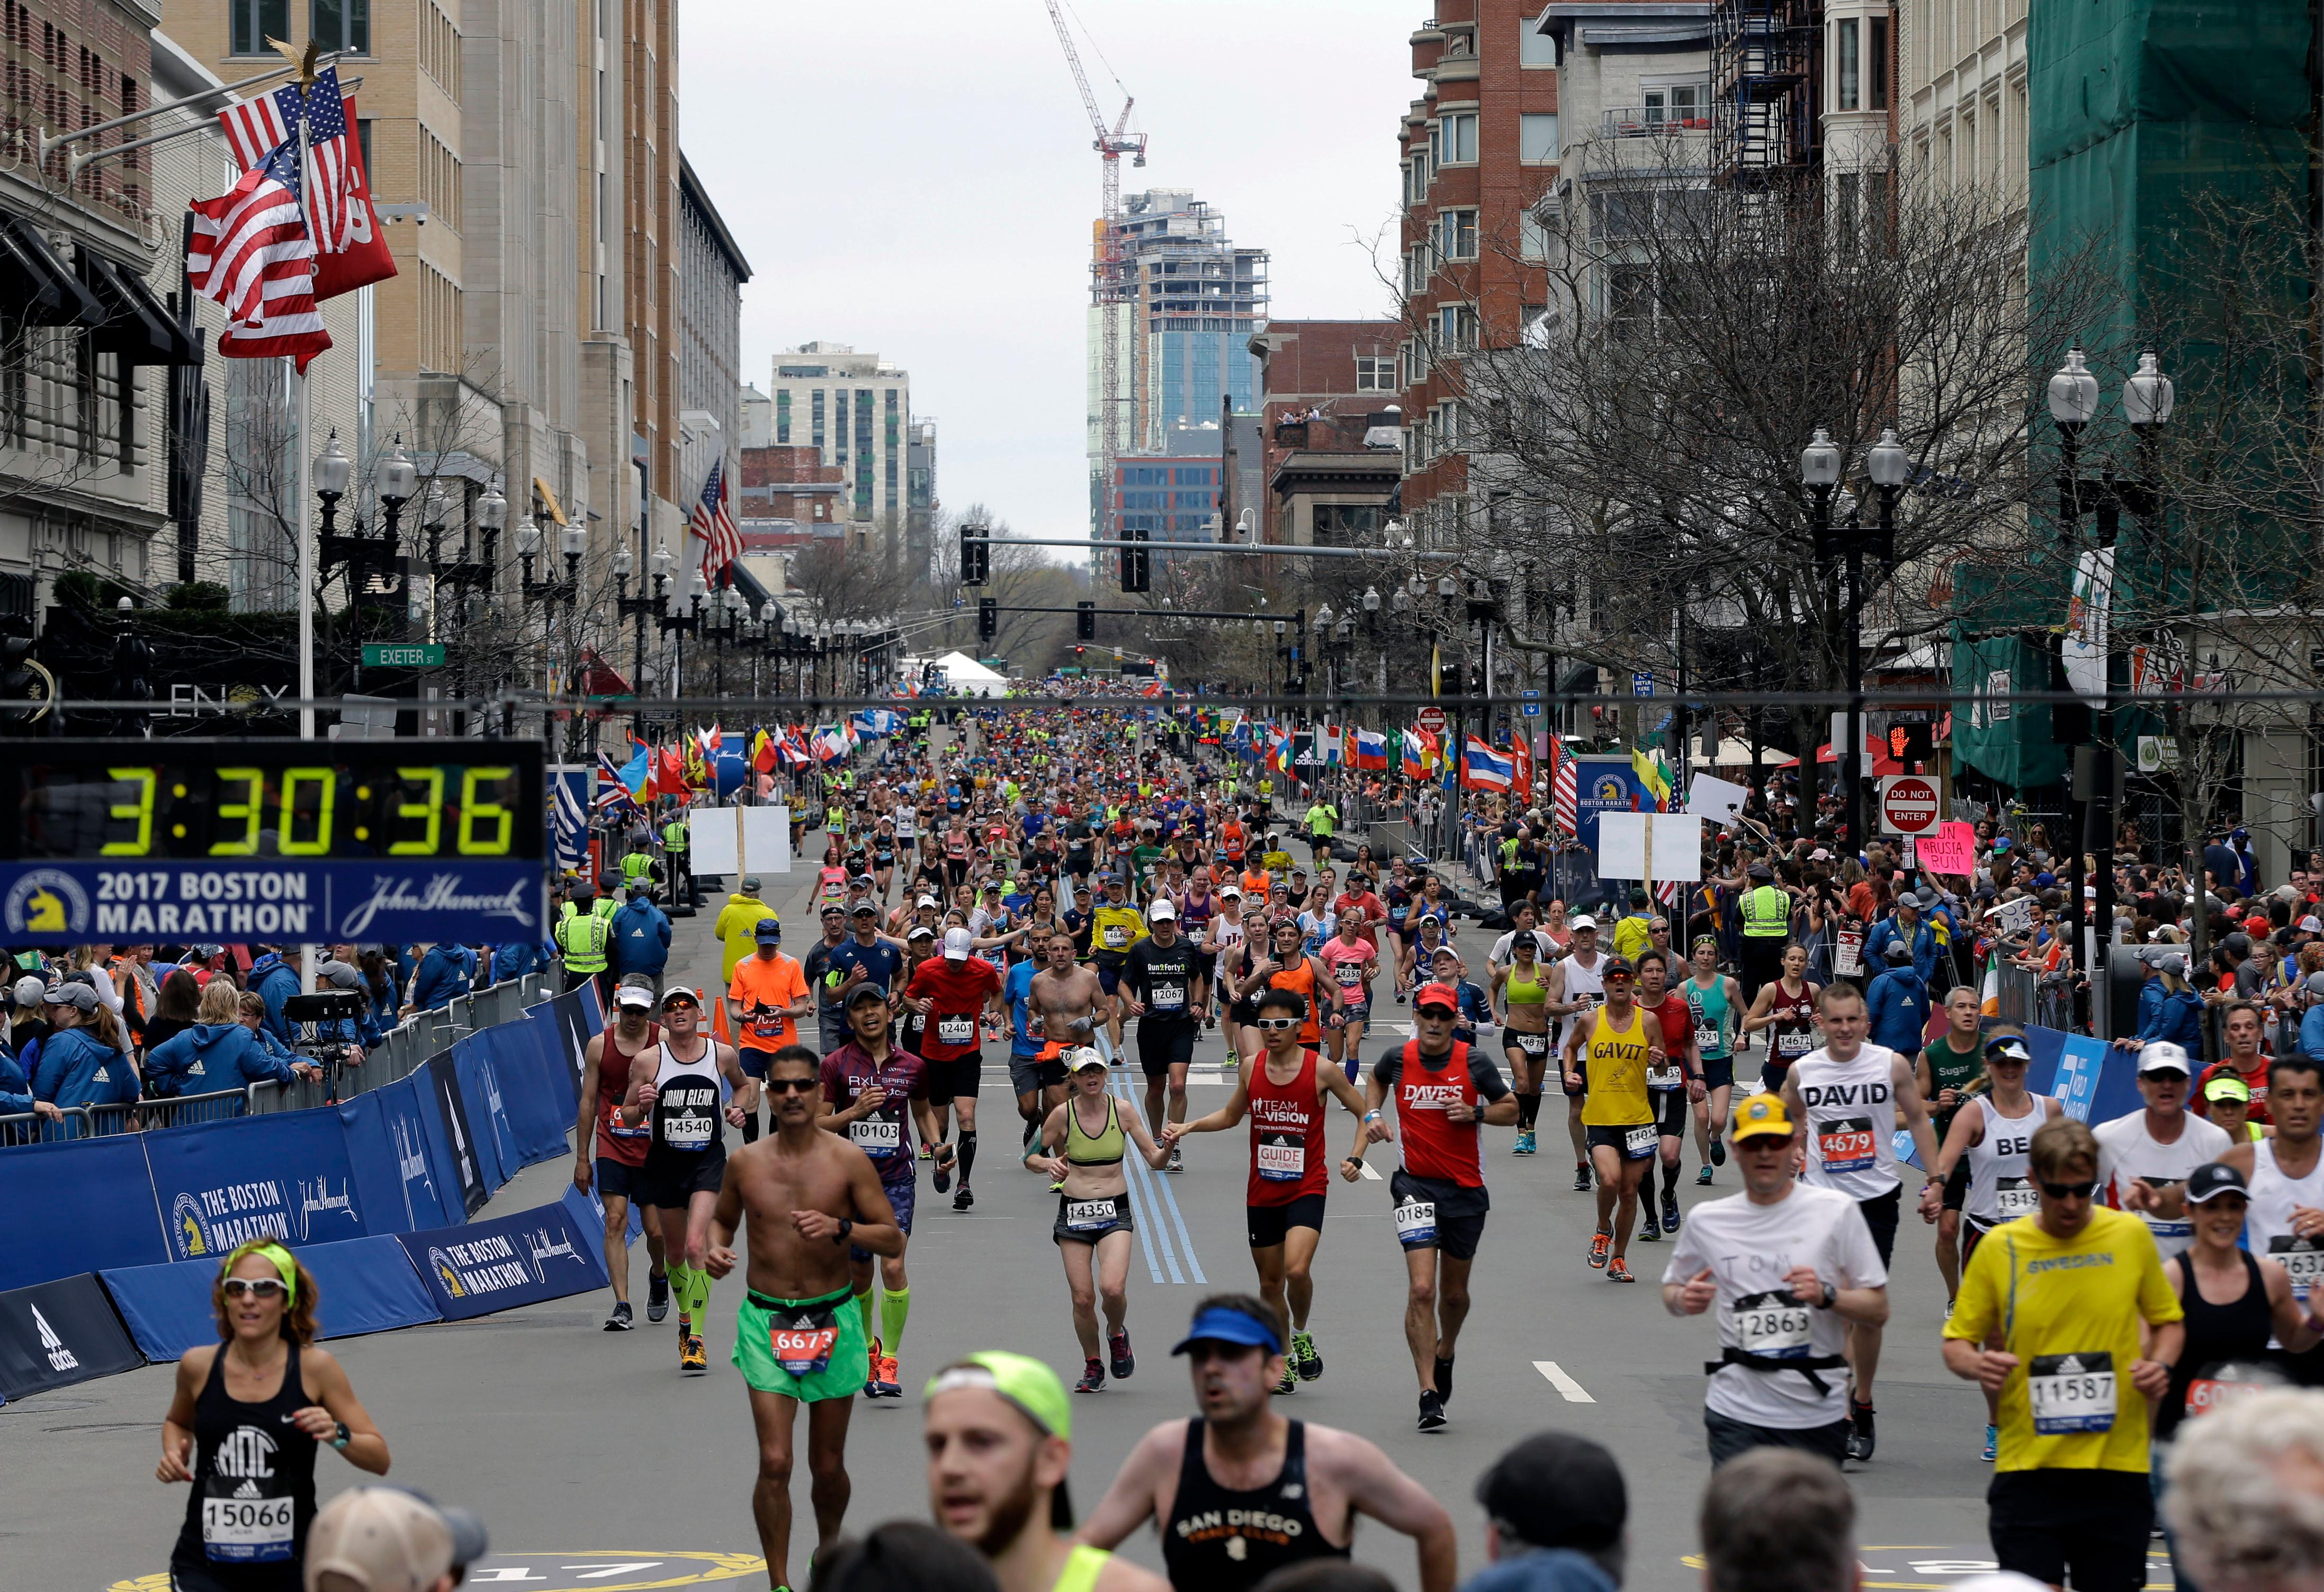 FILE - In this Monday, April 17, 2017, file photo, runners head to the finish line in the 121st Boston Marathon in Boston. (AP Photo/Elise Amendola, File)